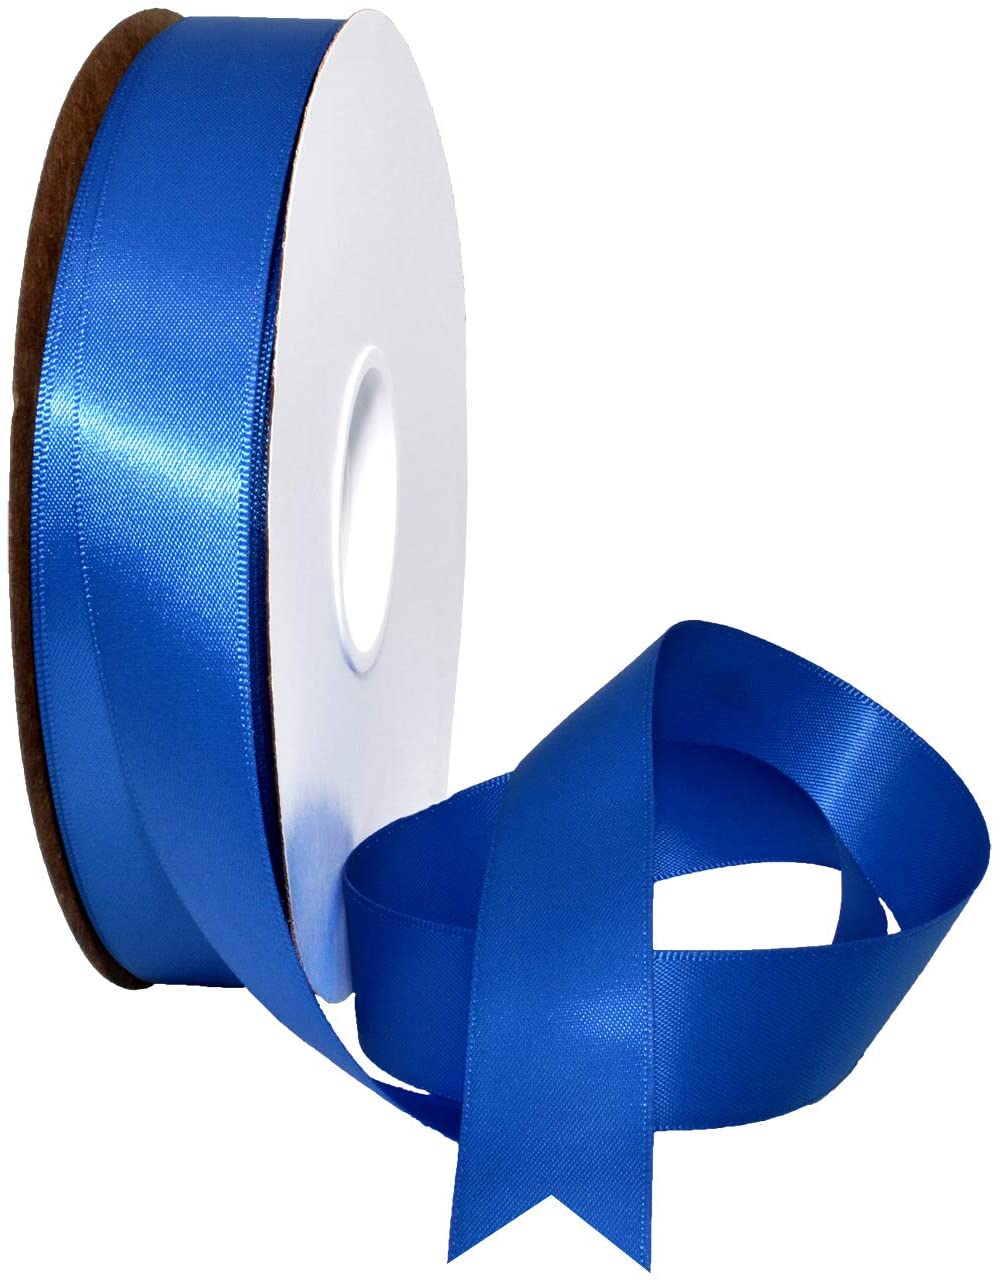 Morex Ribbon Double Face Satin Ribbon, 7/8 Inch by 50 Yards, Royal